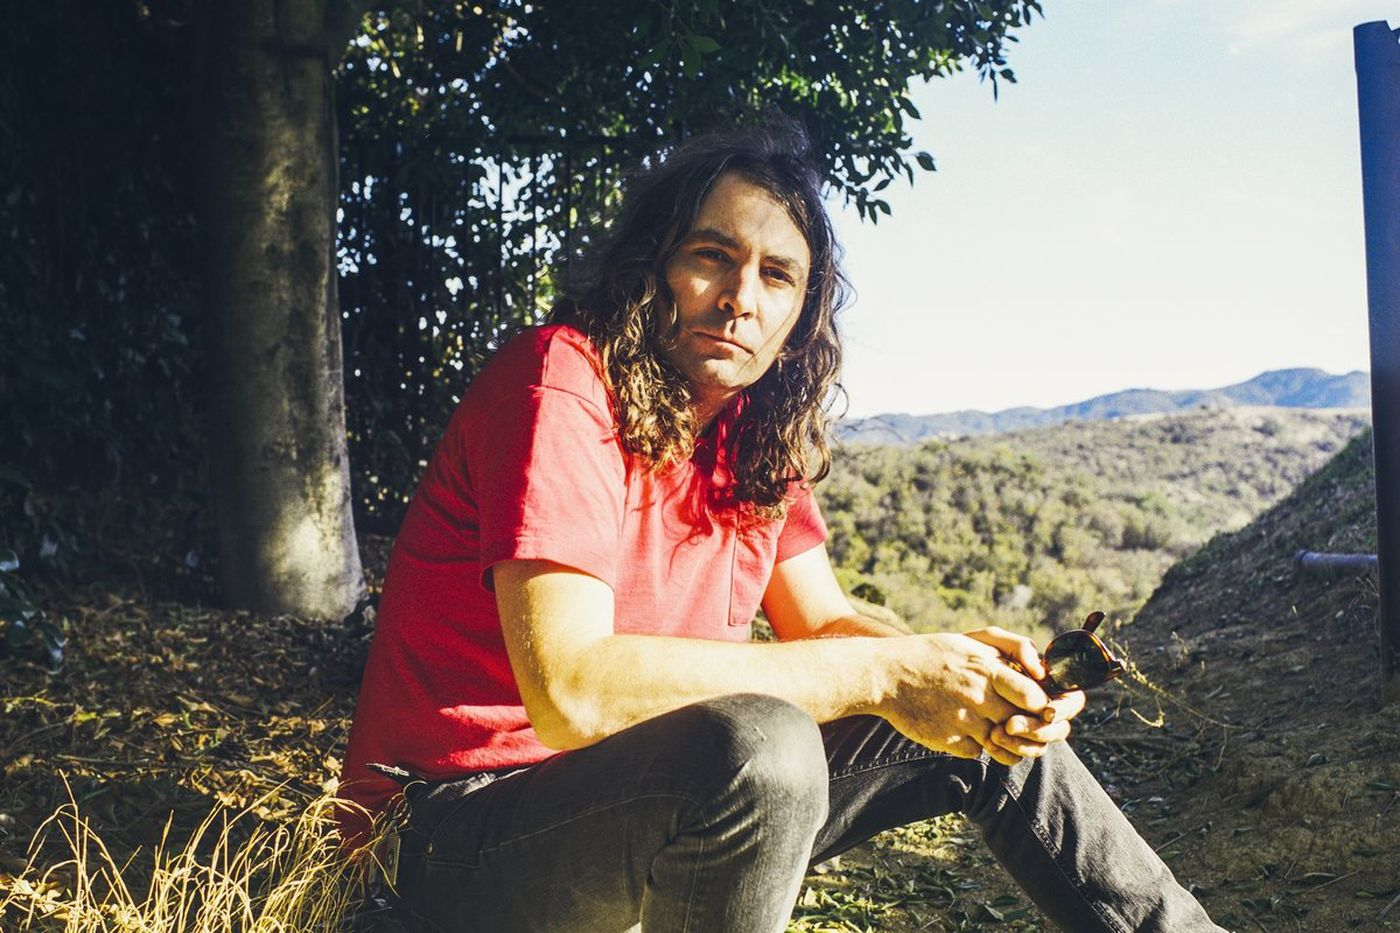 The War On Drugs to release new album 'A Deeper Understanding' in August